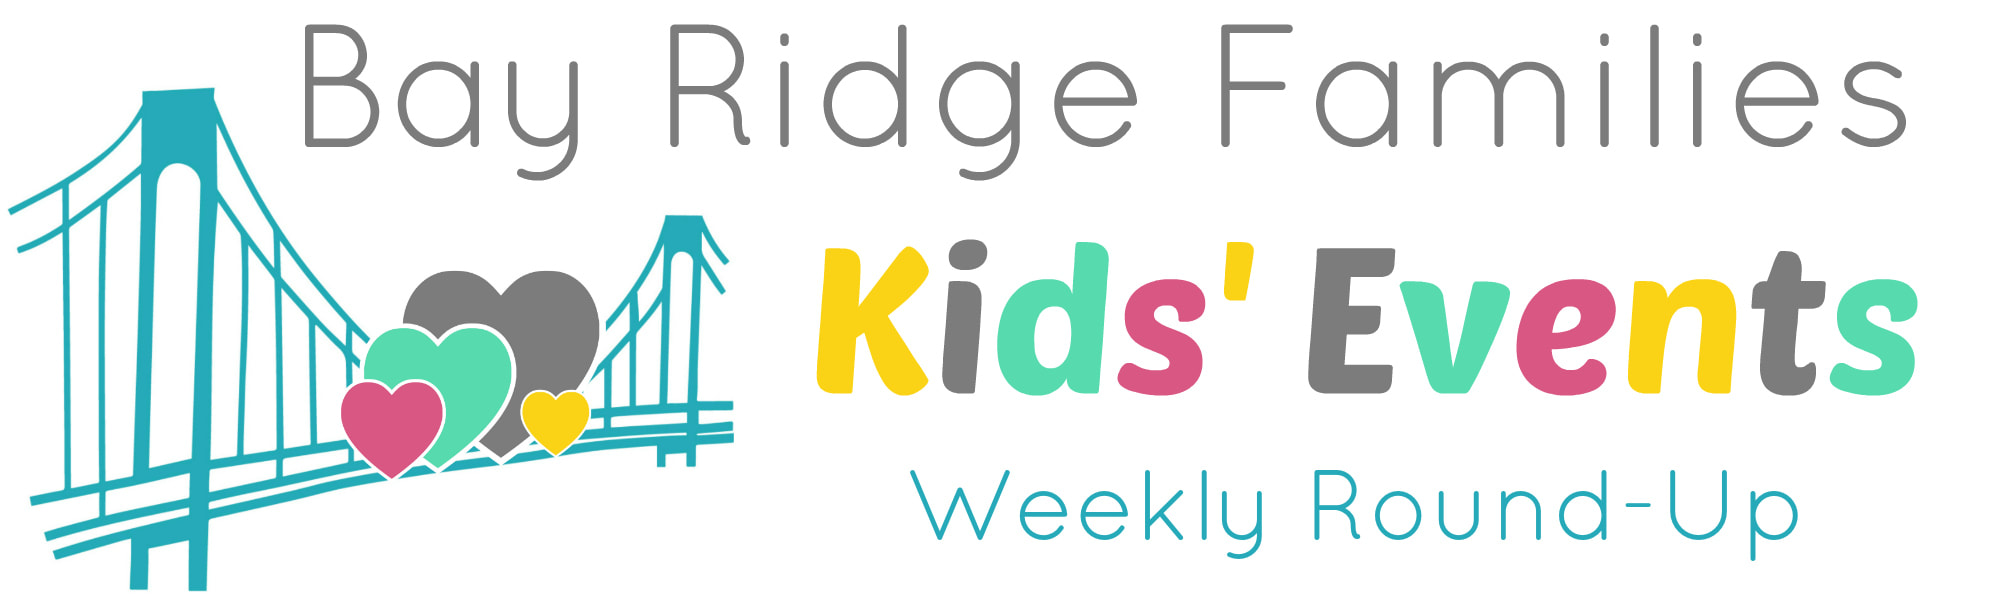 Bay Ridge Families' kids events for the week of August 24 - 30, 2017